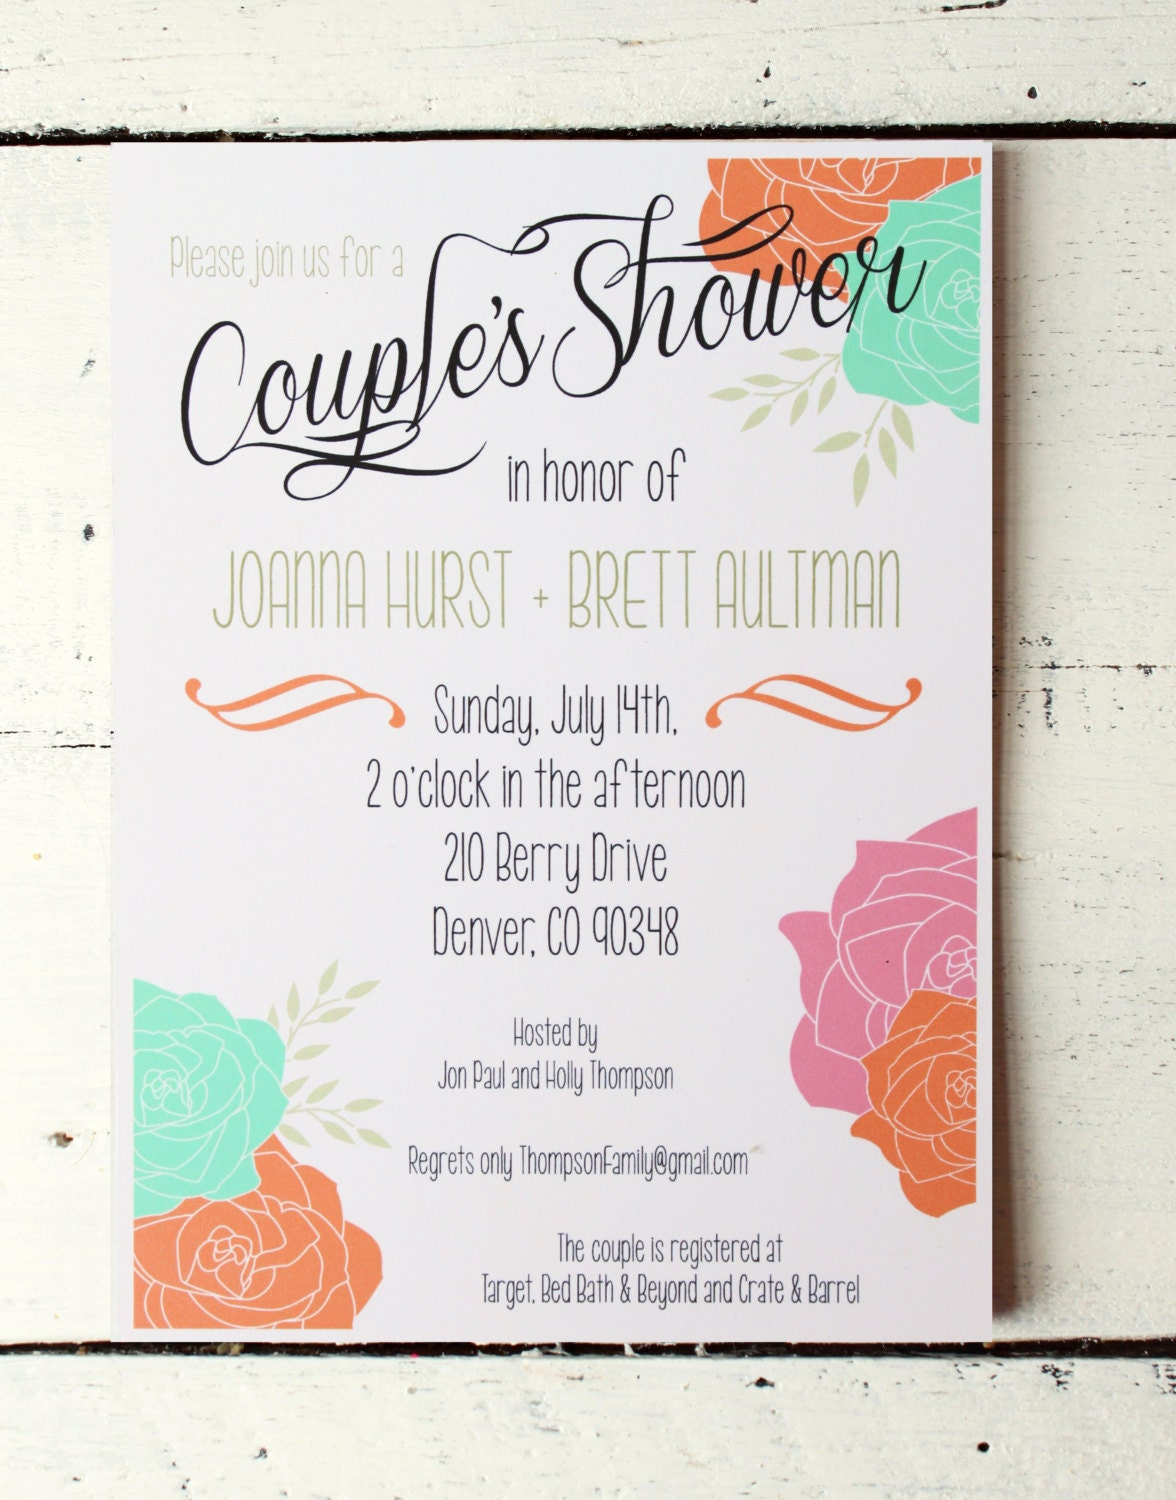 Couples Shower Invitation Bridal Shower Invitation Custom Invite Jack ...